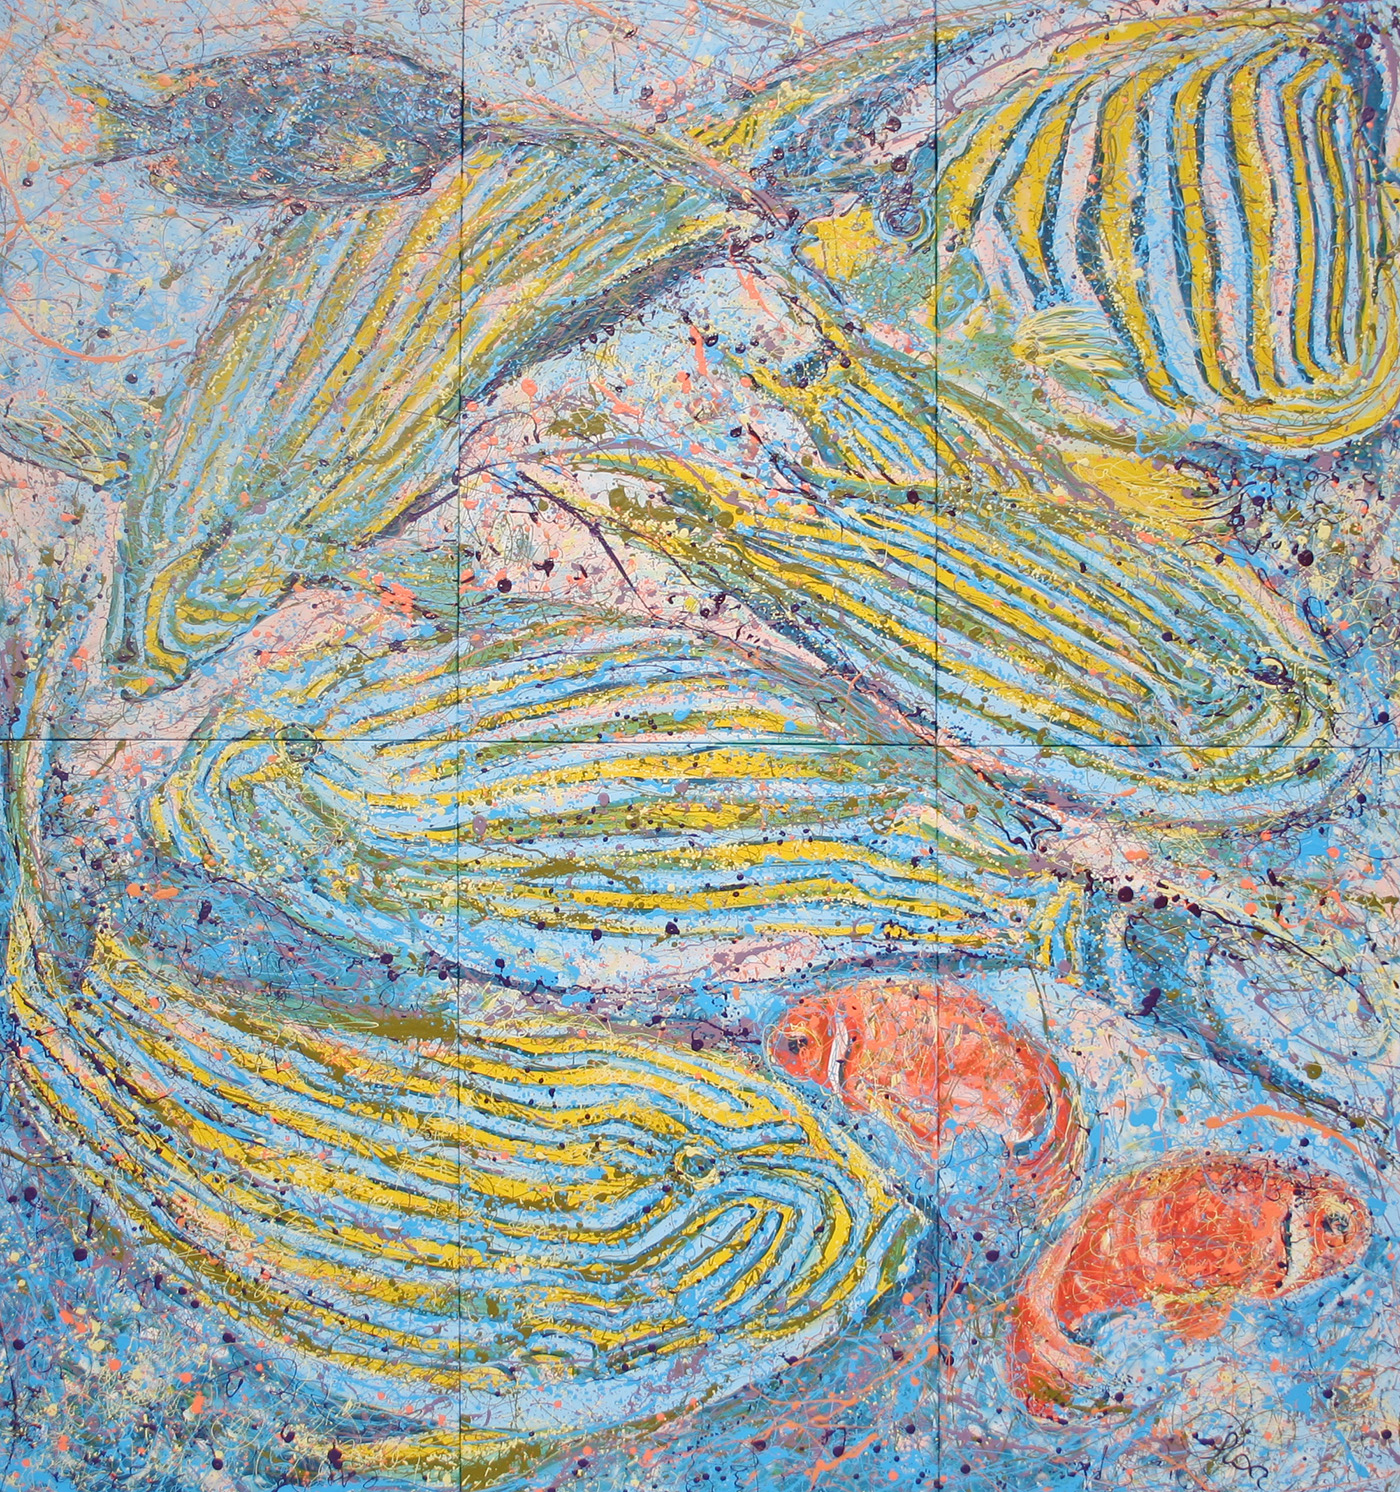 Pacific Snapper Latex Enamel Painting on Gallery Wrapped Canvas by Fort Collins, Colorado Artist Lisa Cameron Russell